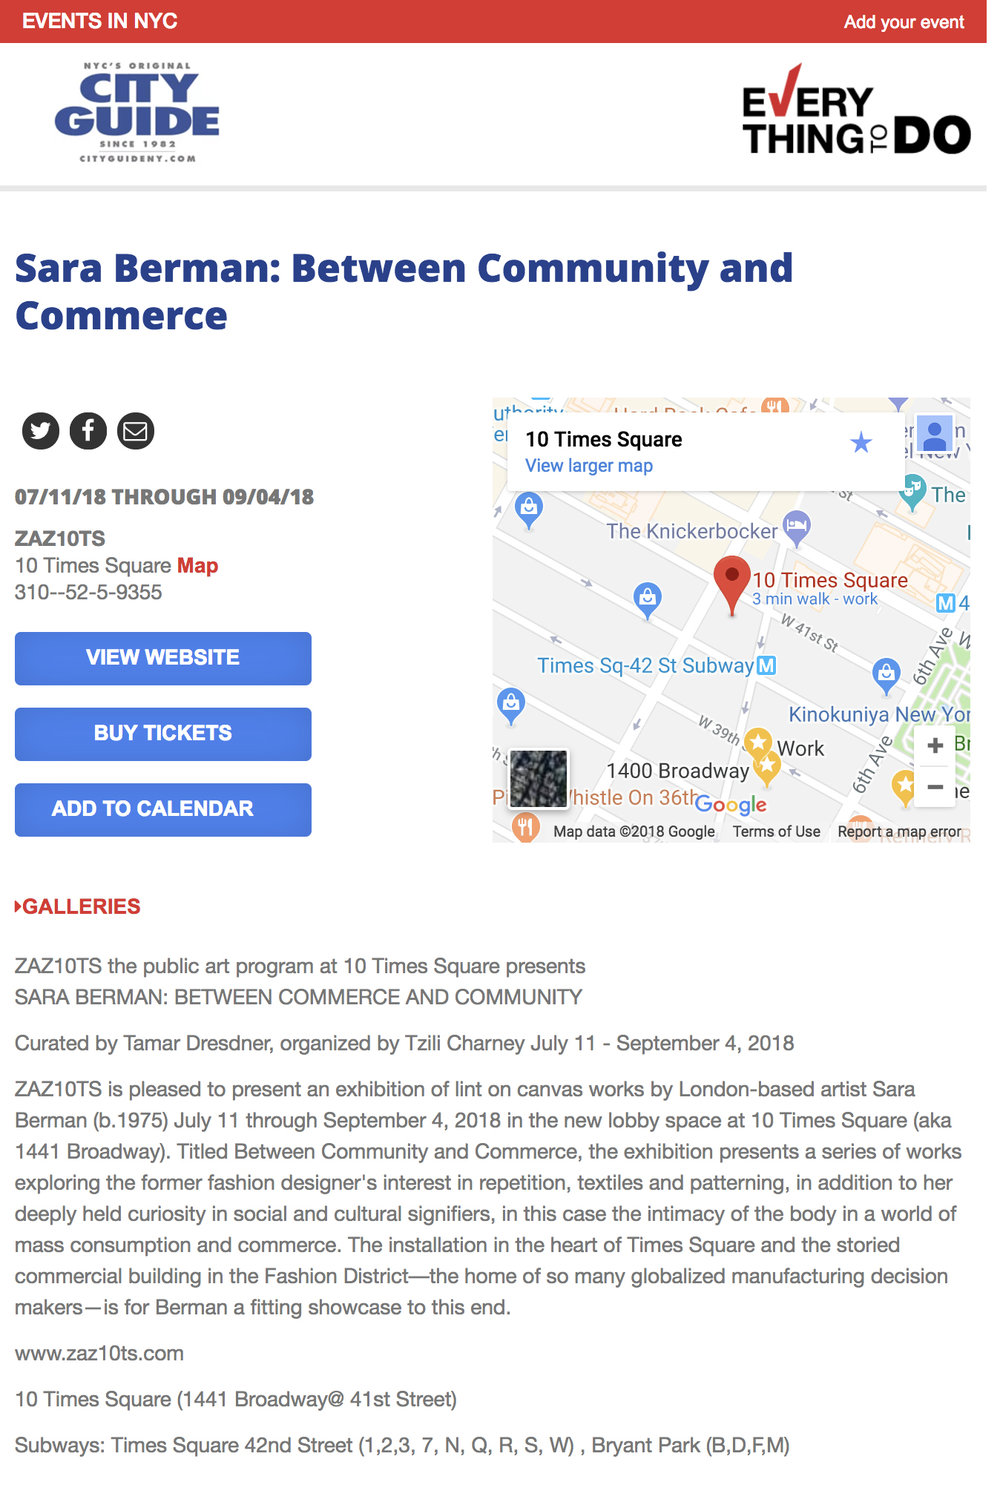 CITY GUIDE  Sara Berman: Between Community and Commerce (July 11, 2018)